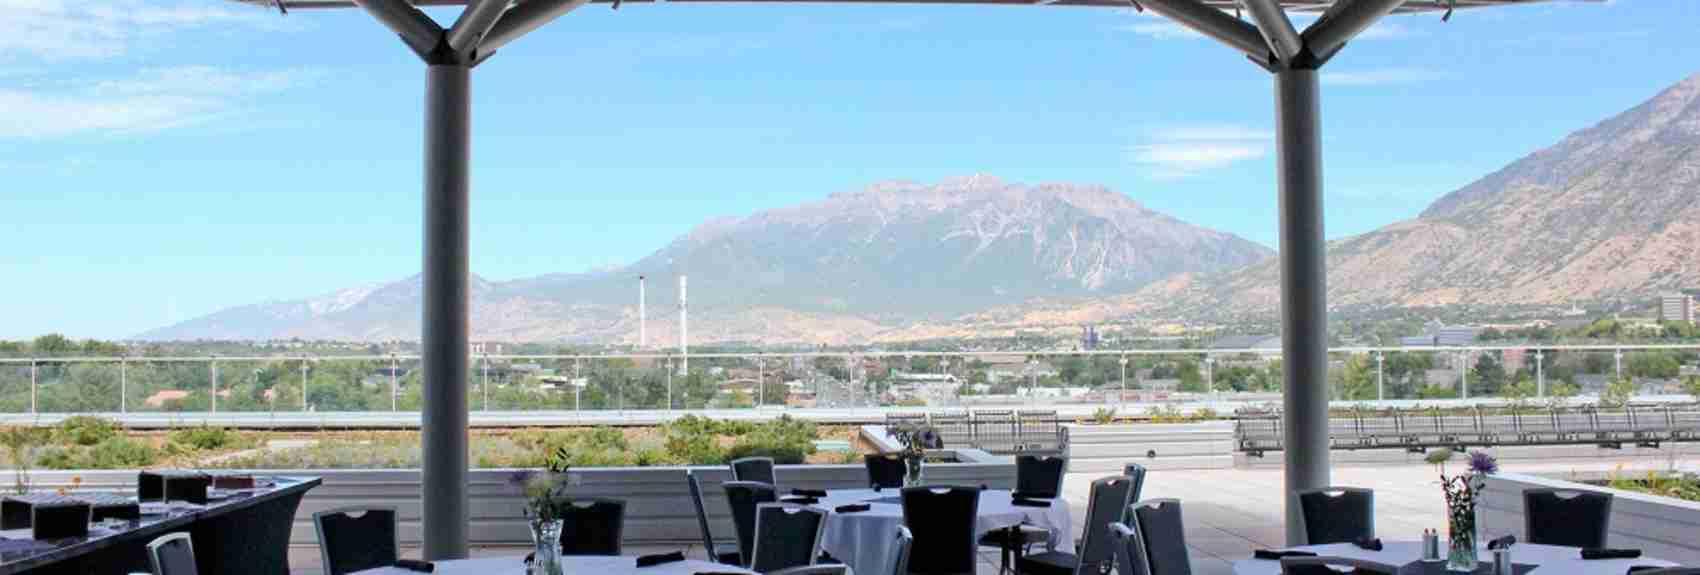 Utah Valley Convention Center Terrace